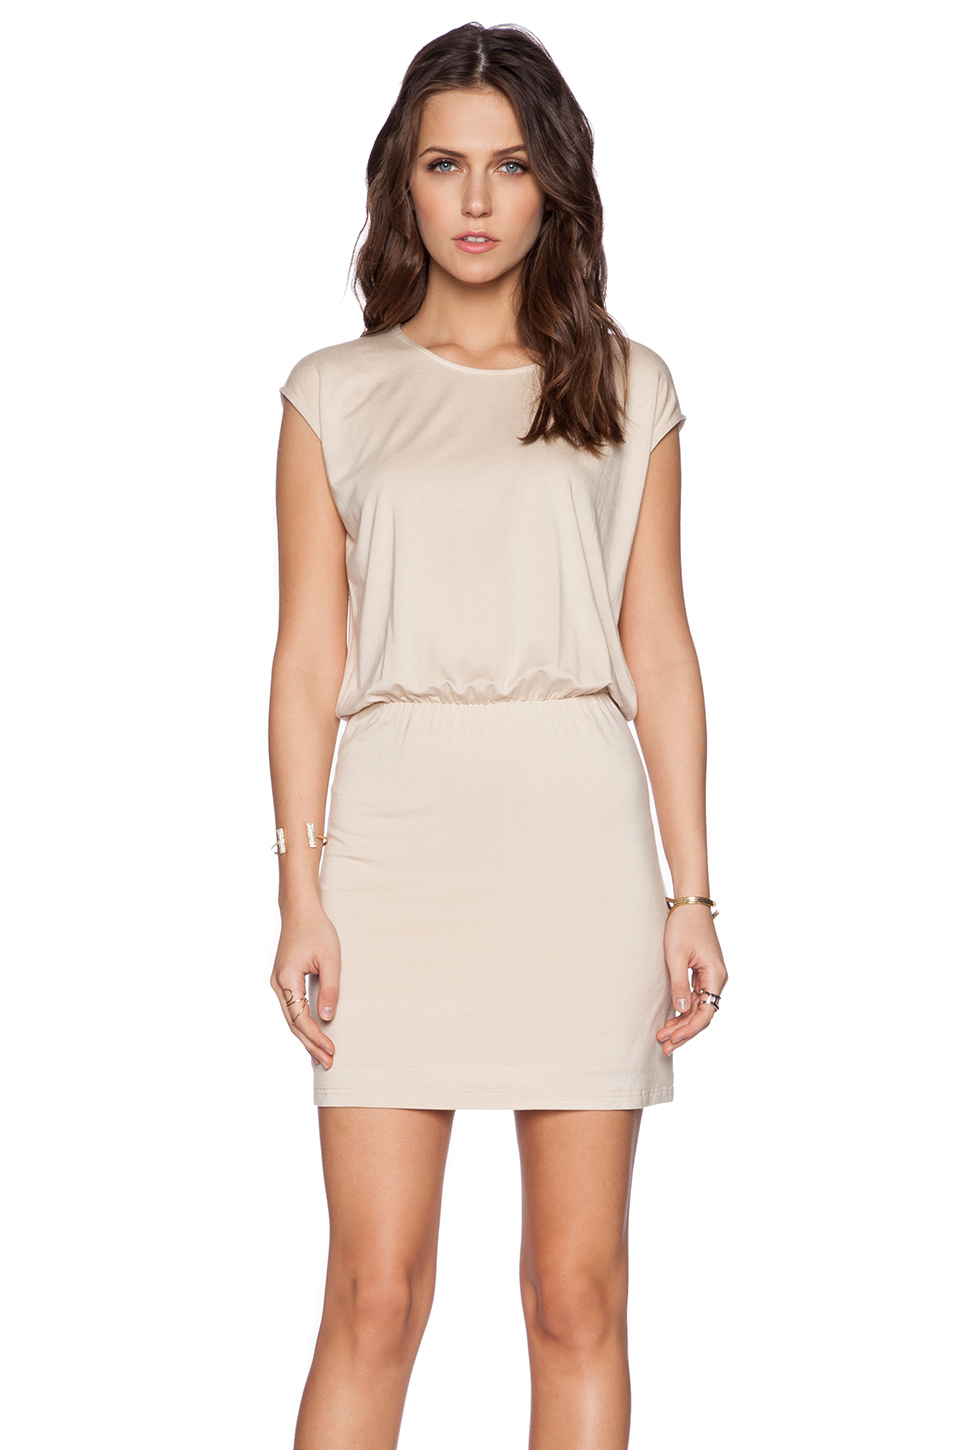 Blaque Label Bloused Dress In Natural | Lyst